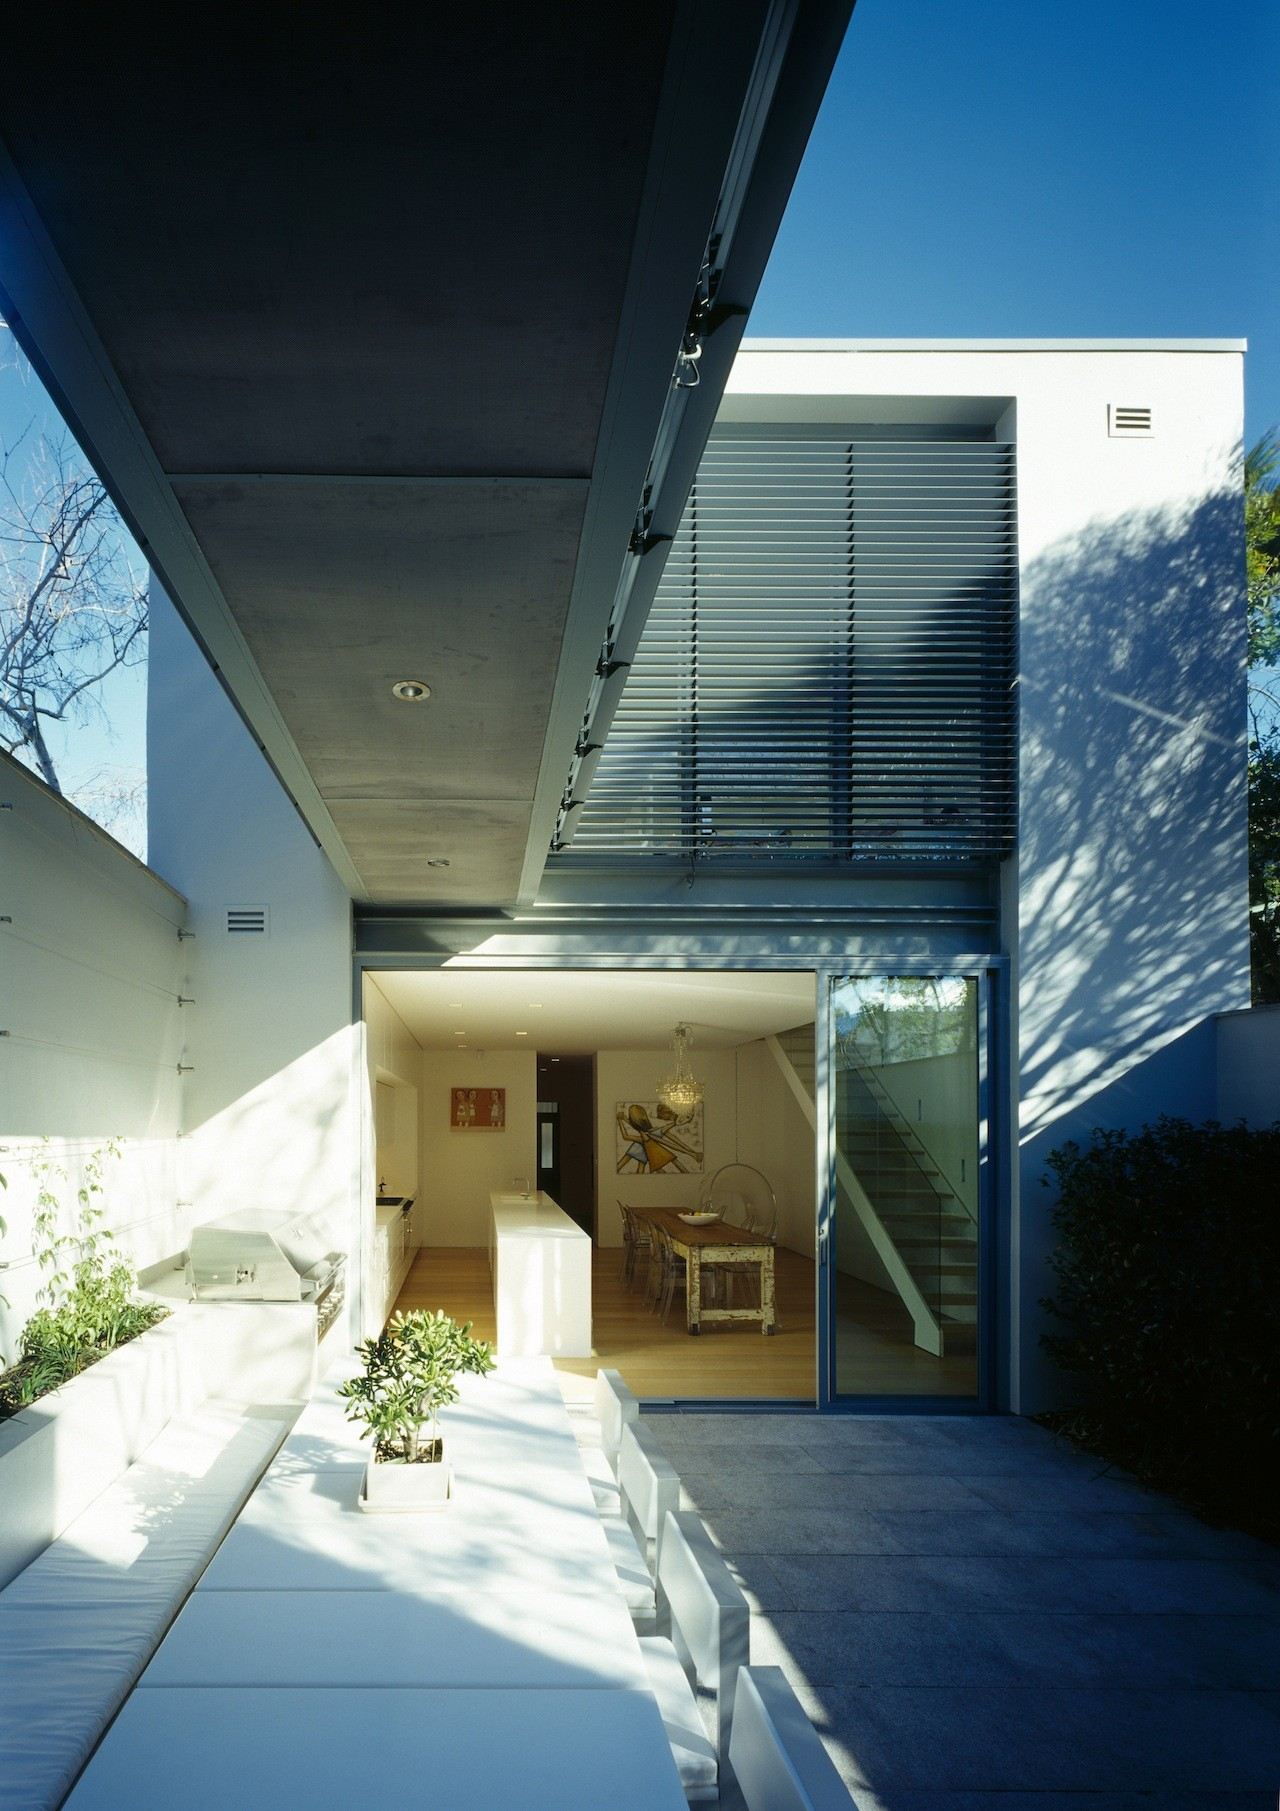 Fink House / Ian Moore Architects, © Brett Boardman